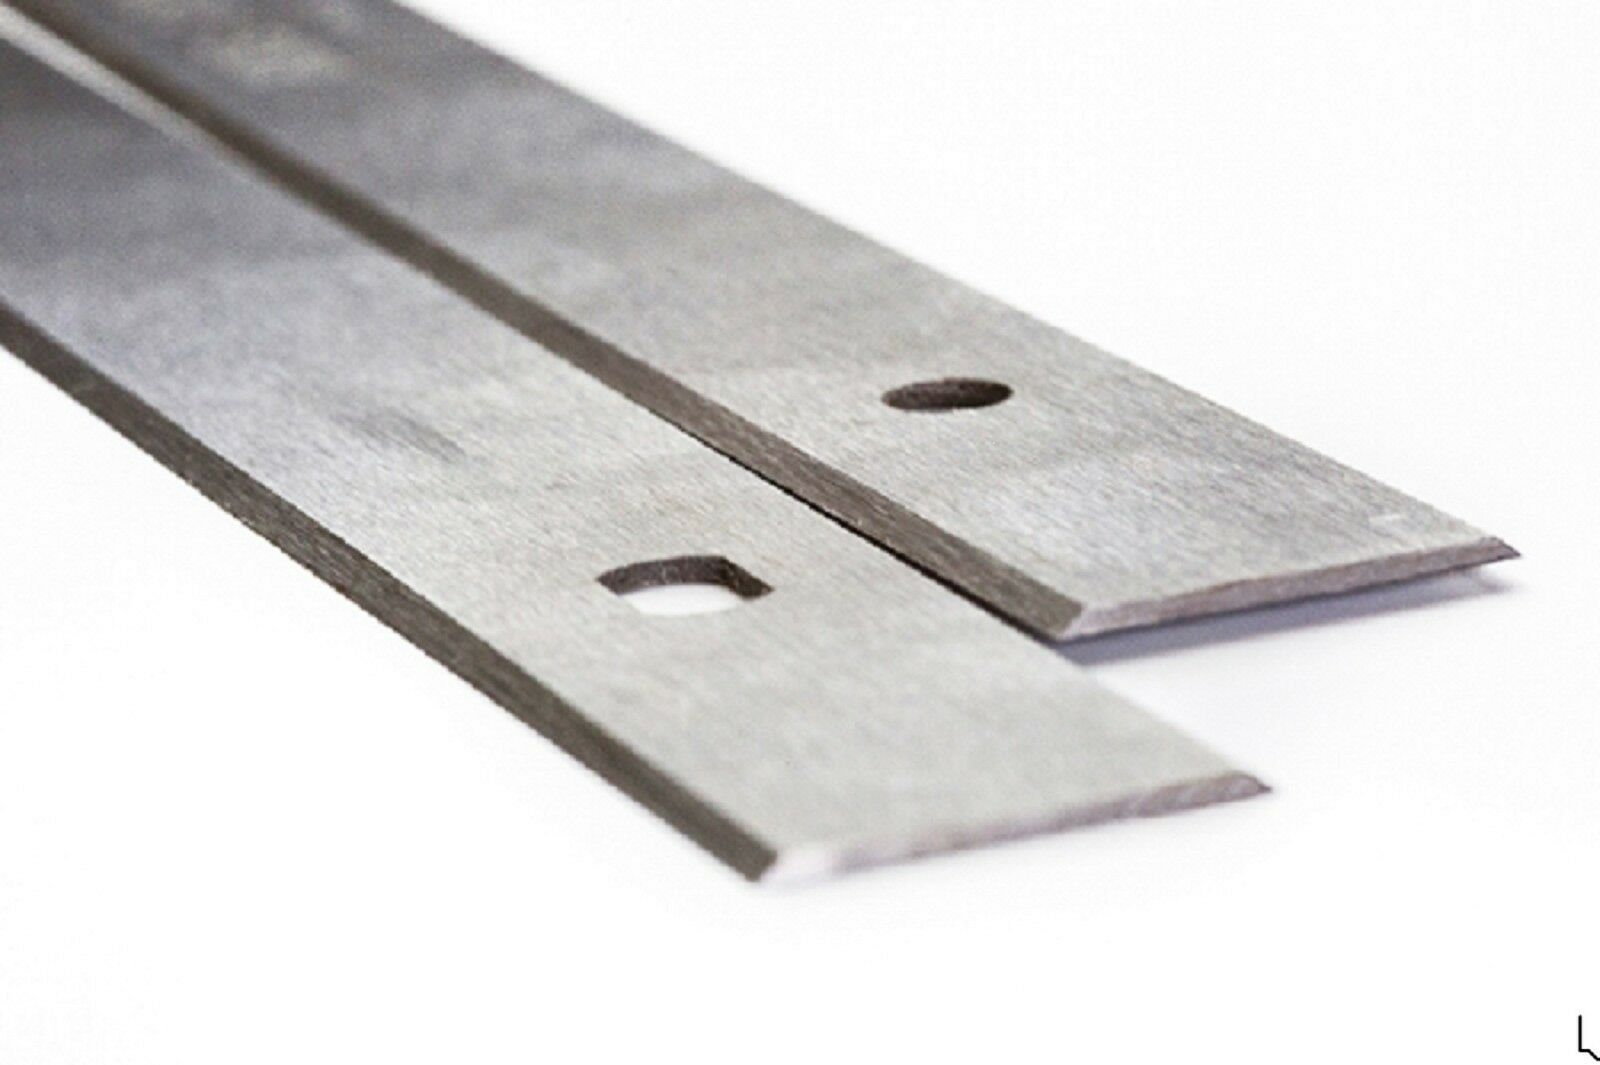 260mm Perform CCNPT Double Edged Disposable HSS Planer Blades S700S3